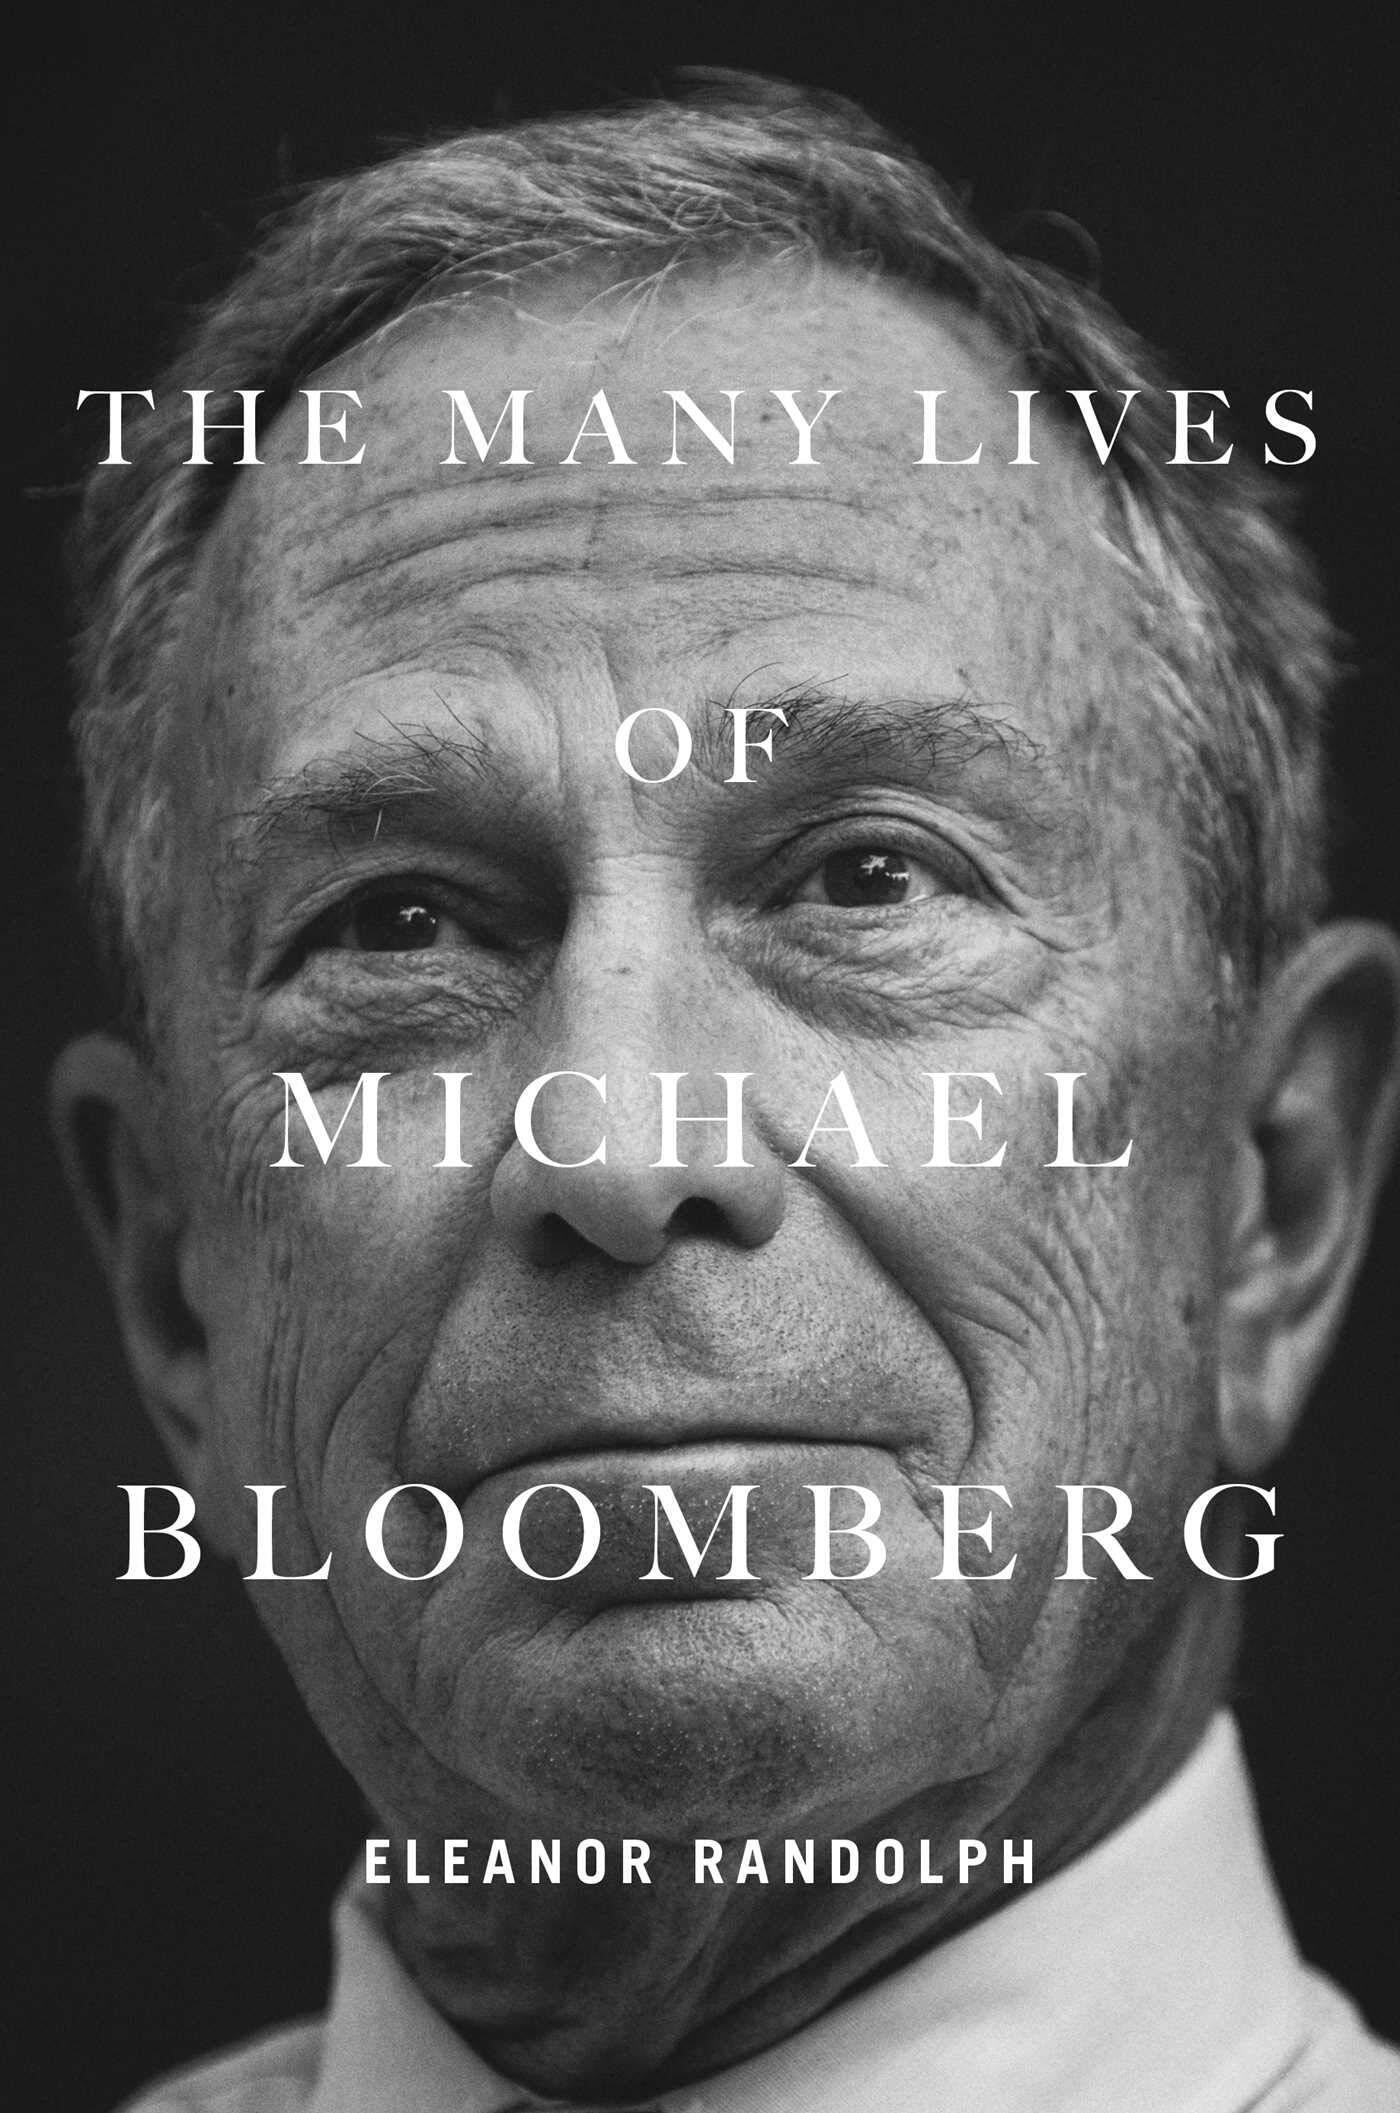 Bloomberg readied 2020 run with lettuce diet, contacts, hearing aids